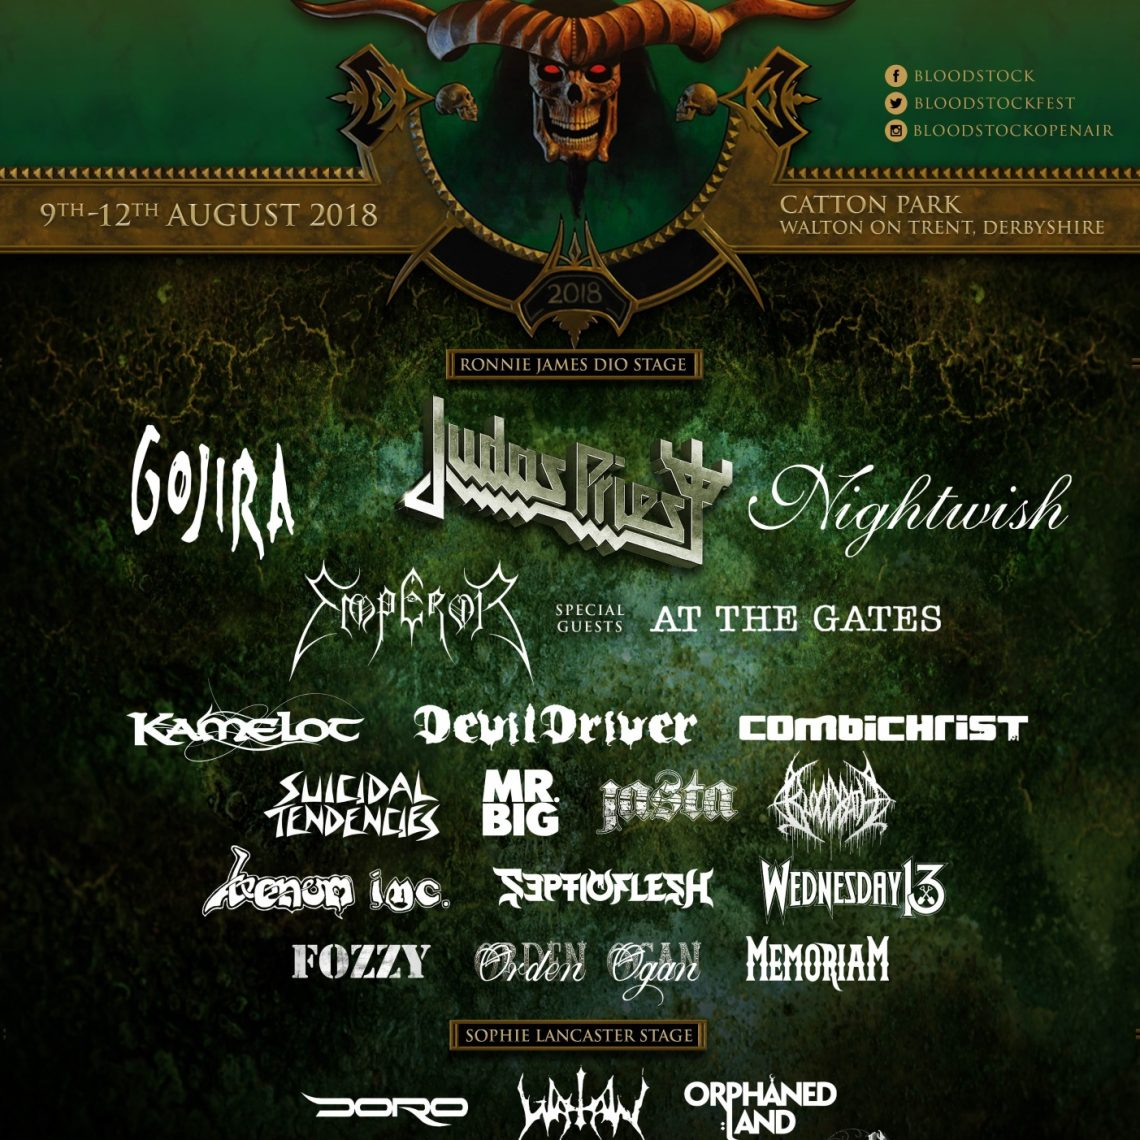 BLOODSTOCK Welcomes At The Gates, Exhorder, & more….